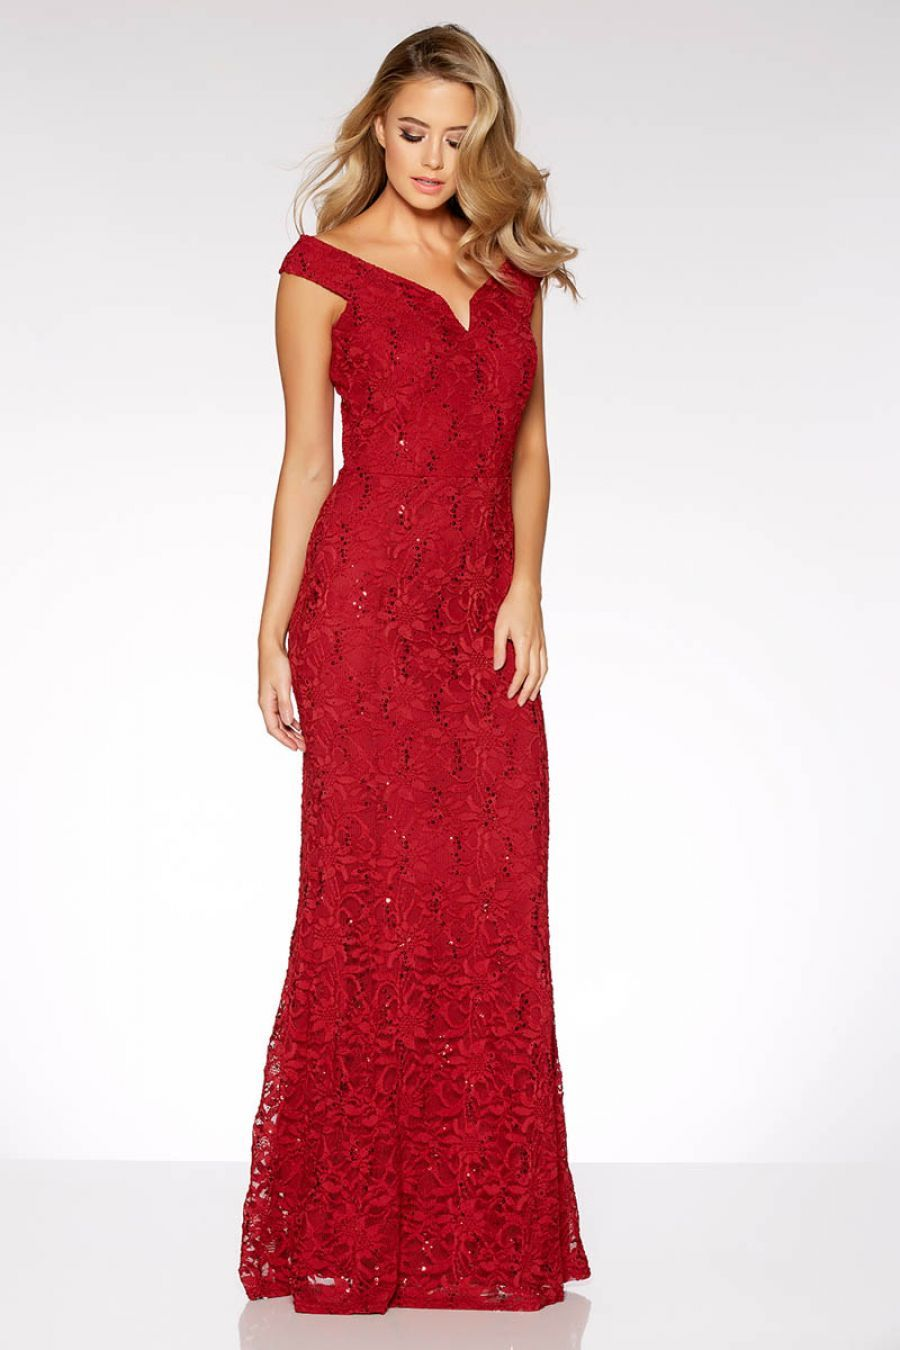 6eed7e57e83c Berry Lace Sequin Bardot Maxi Dress - Quiz Clothing | Gowns ...